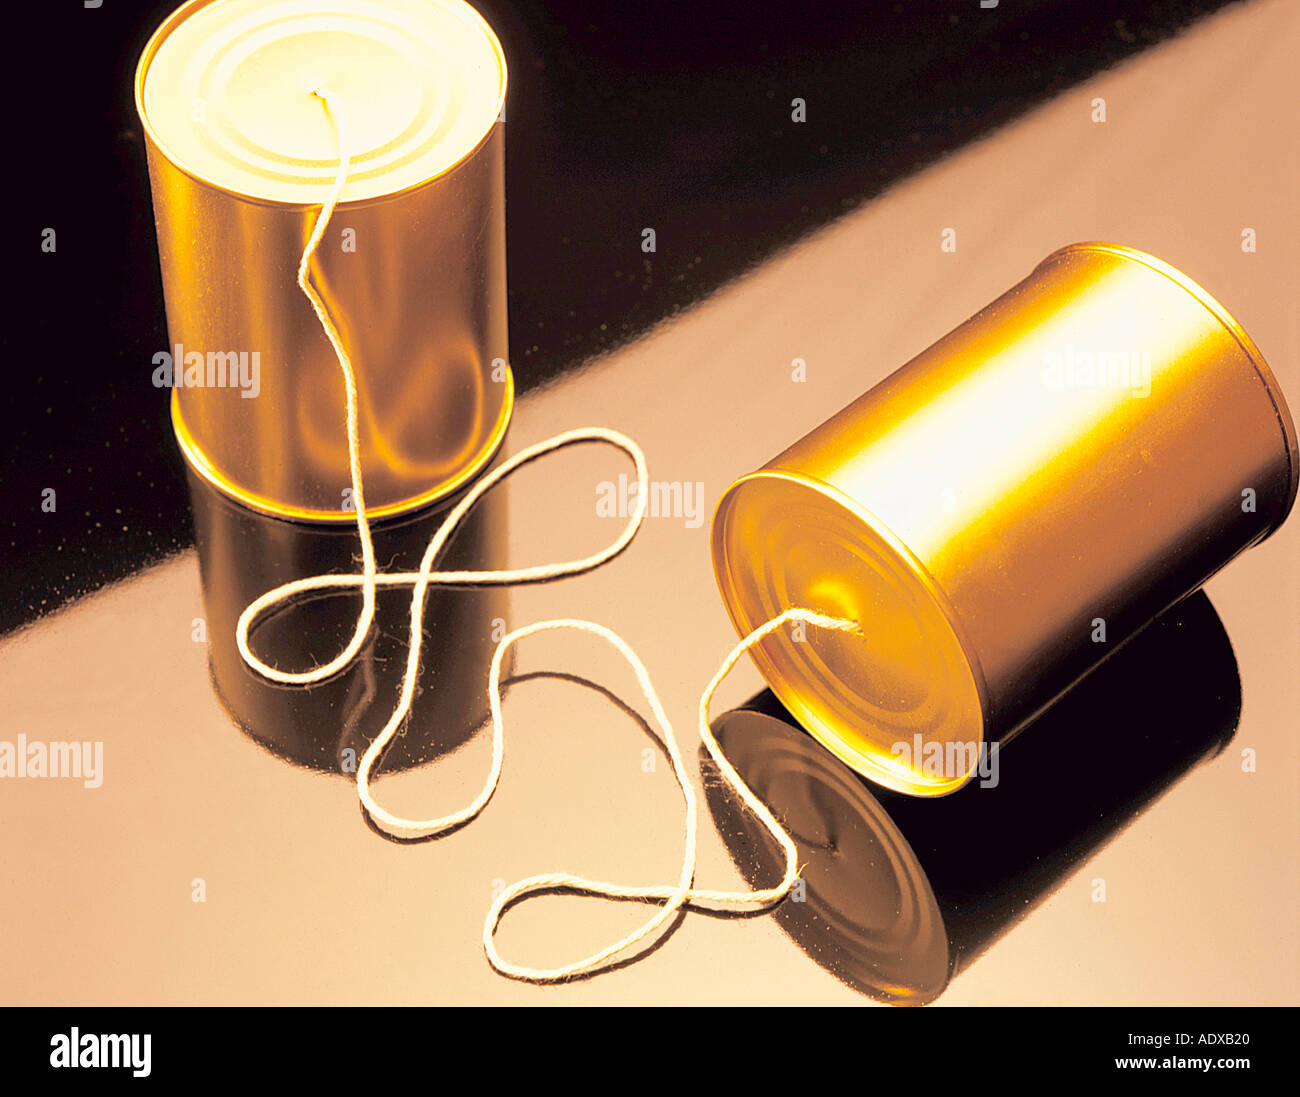 Concepts tin tins can cans string archaic phone toy play yellowish leisure concept miscellaneous background texture - Stock Image